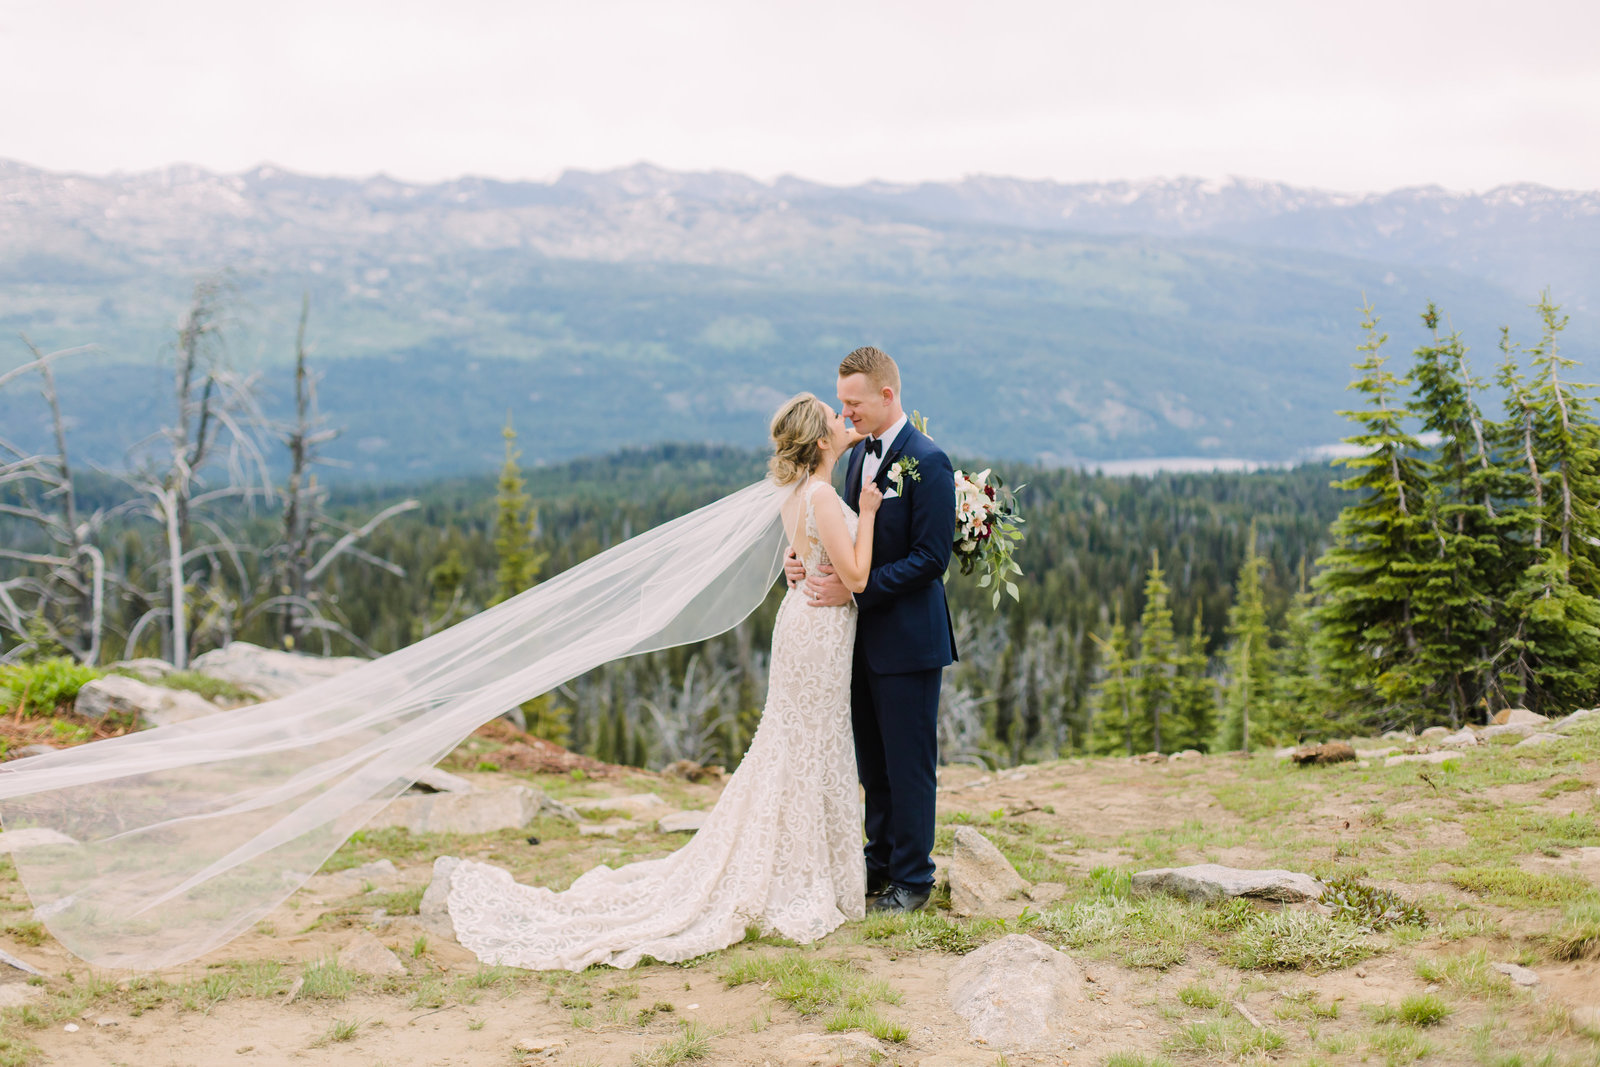 Bride and Groom atop Brundage Mountain in McCall, Idaho during their wedding photography experience.